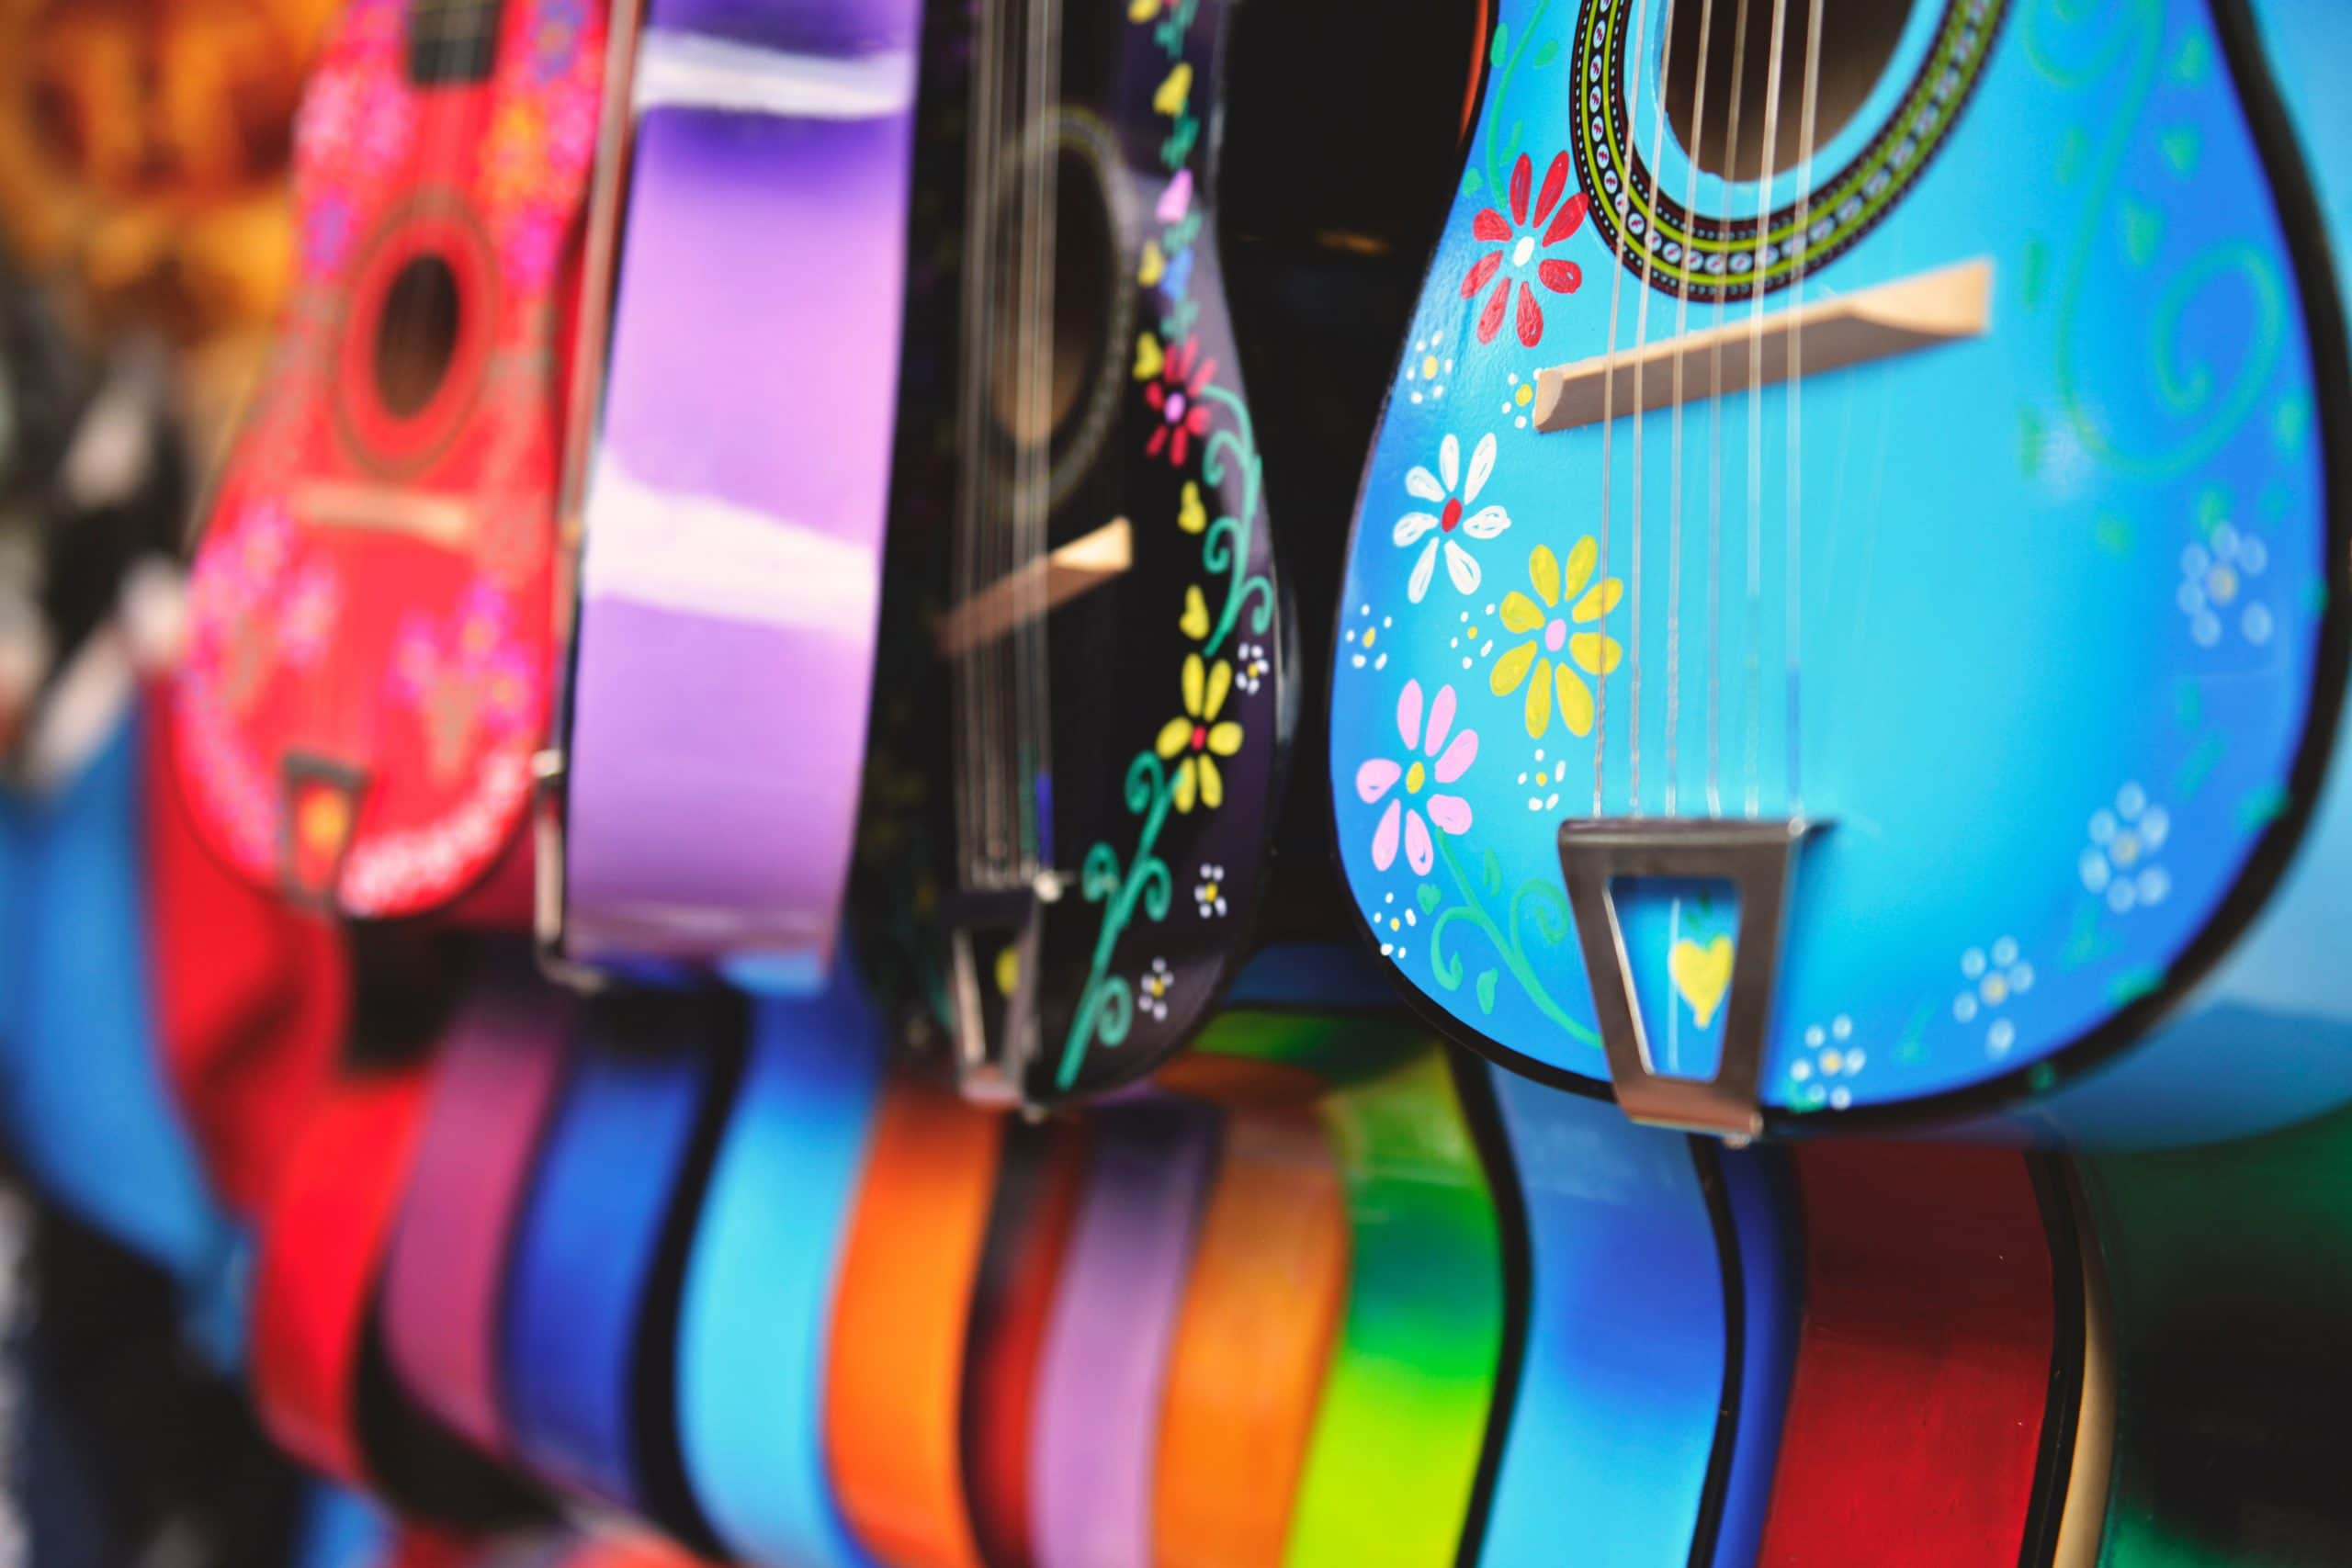 Colorful picture of decorated guitars